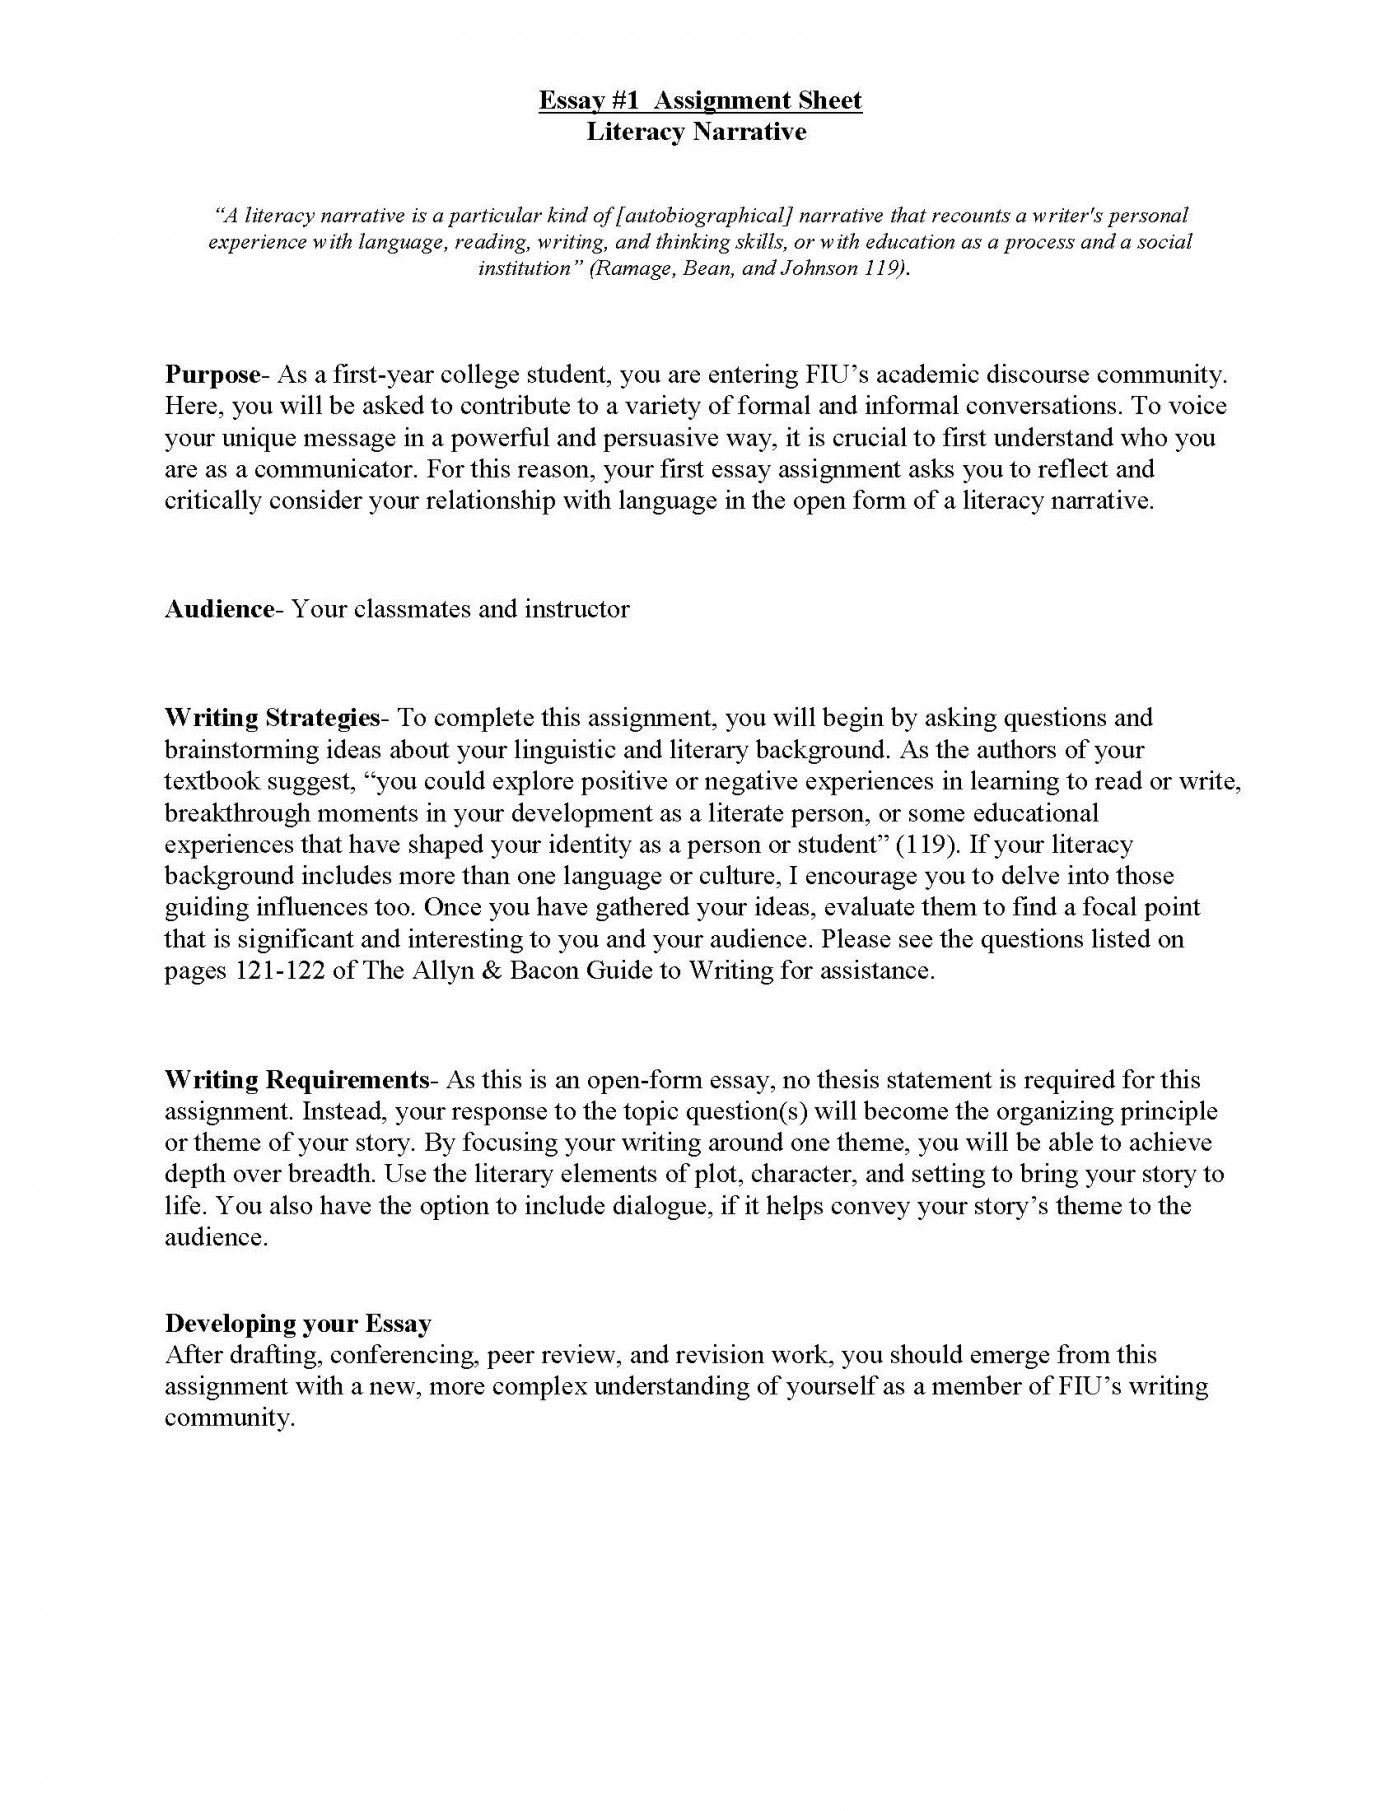 019 Narrative Essays High School Literacy Unit Assignment Spring 2012 Page 1 Unique Essay Examples Personal Pdf 1400